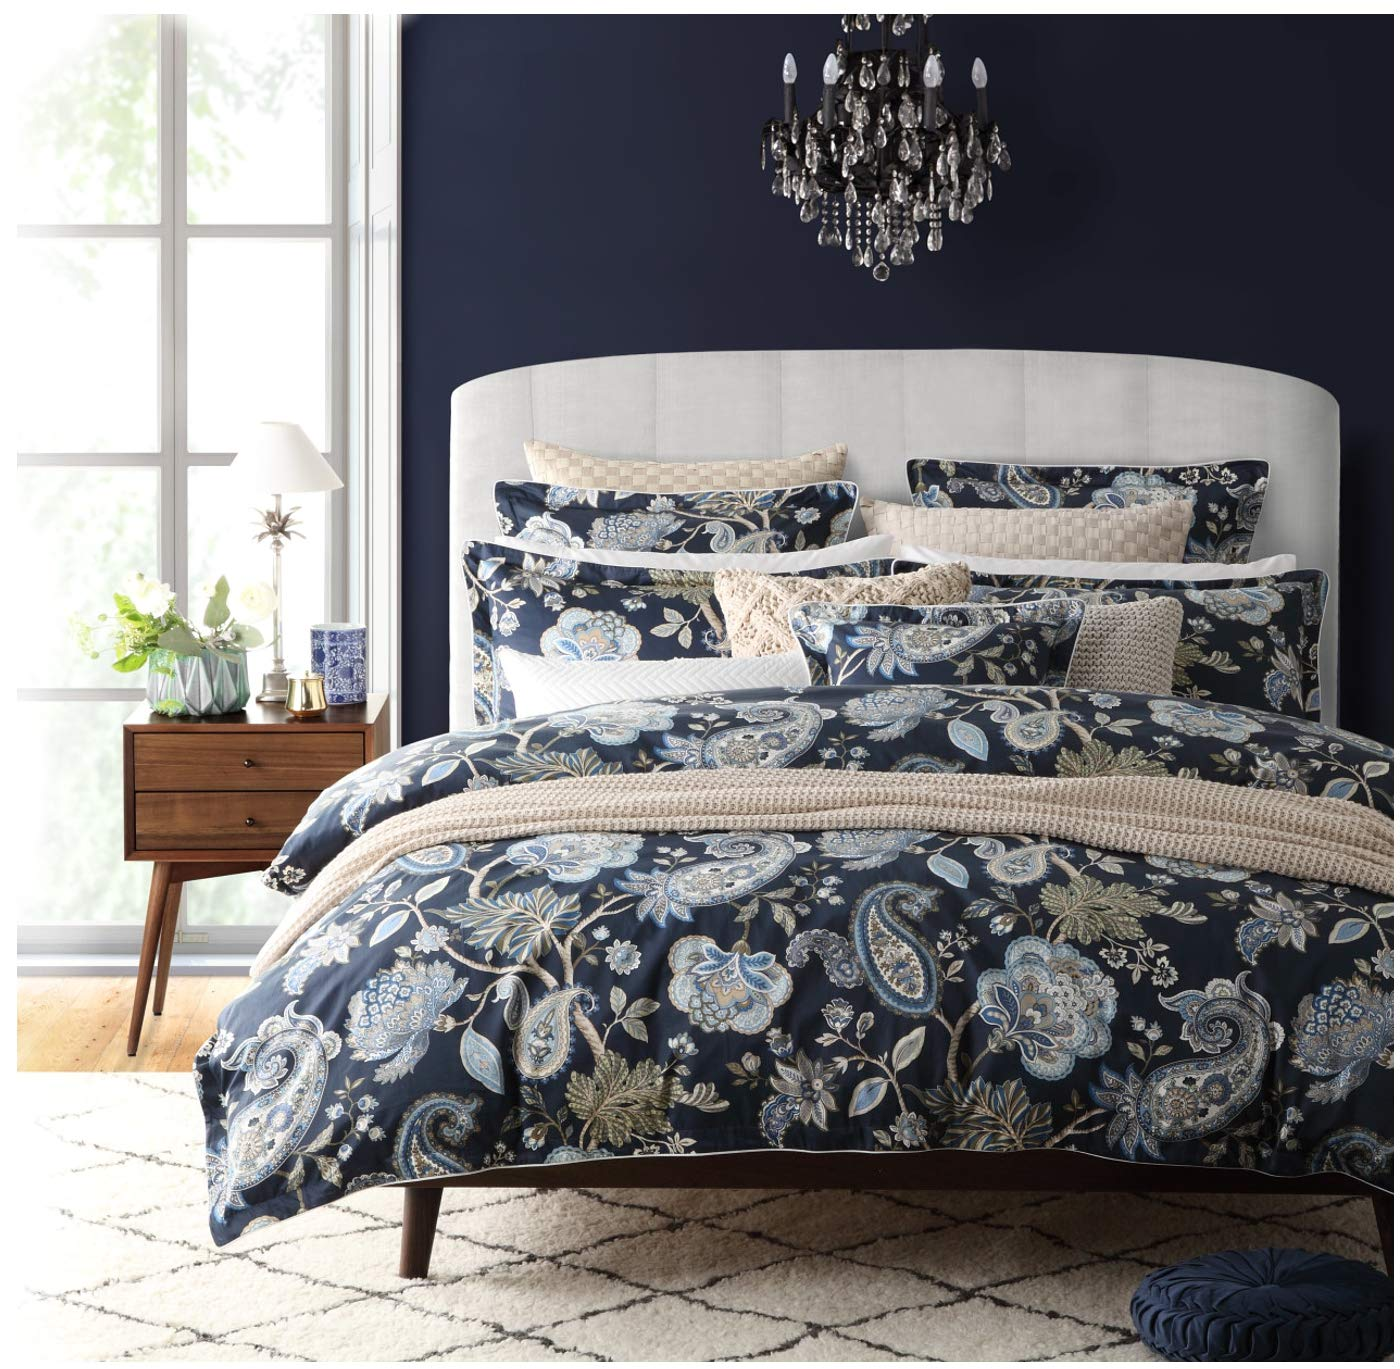 Nicole Miller Bedding 3 Piece Cotton Full / Queen Duvet Cover Set Jacobean Floral Paisley Vines Pattern